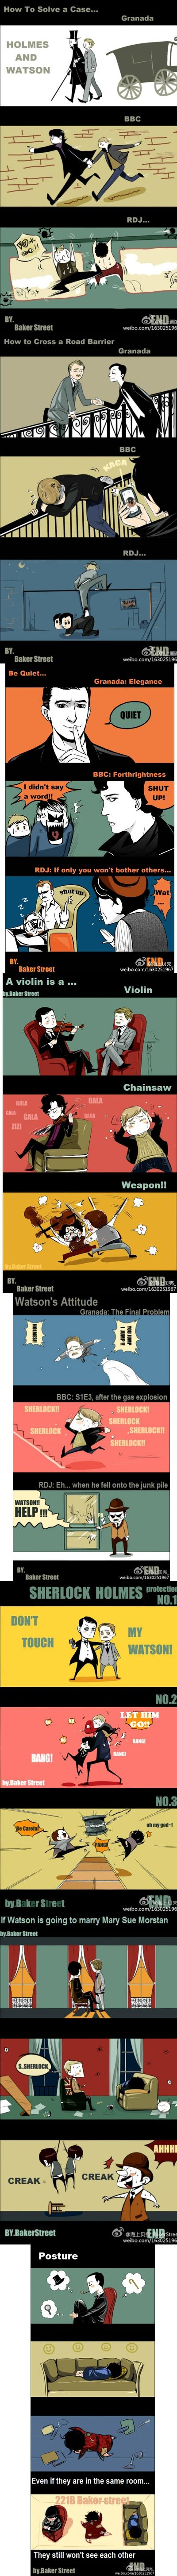 Granada vs BBC vs RDJ -- The Holmes and the Watsons (are all far too adorable) << I DON'T KNOW WHO TO LOVE!!